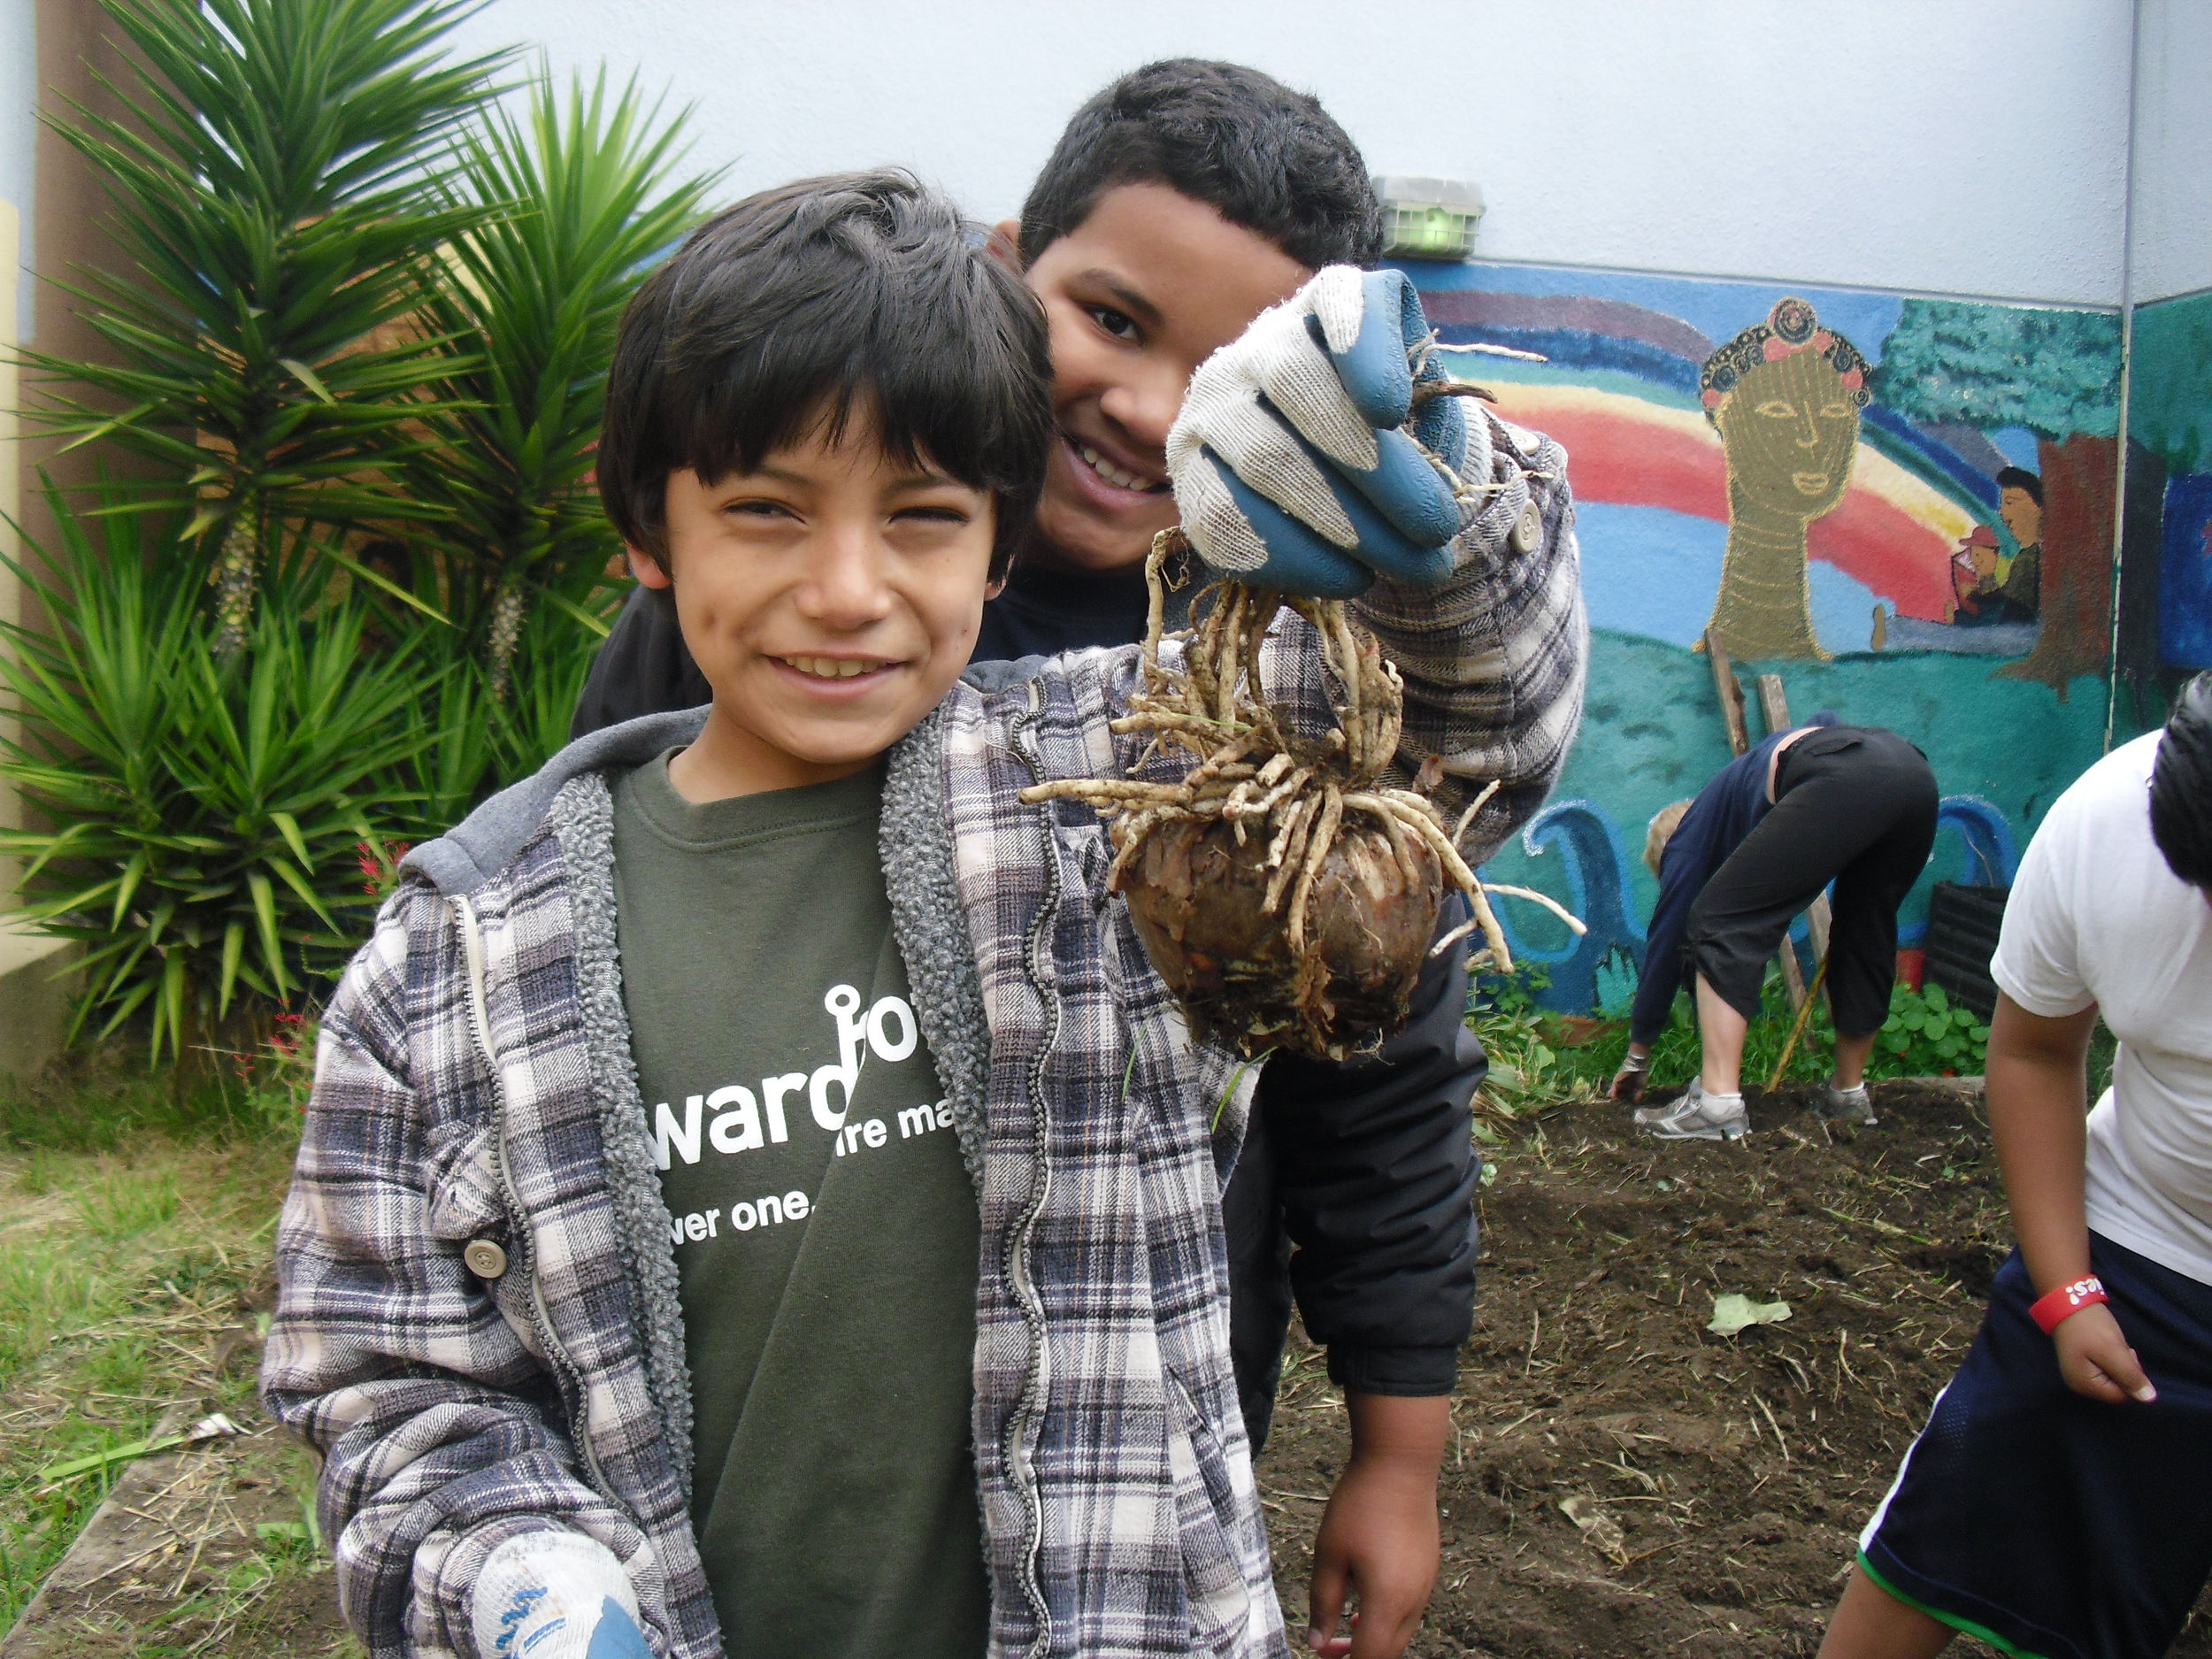 """Upward Roots is a place where you have a chance to help the world.""   - Andrew, 4th grade"